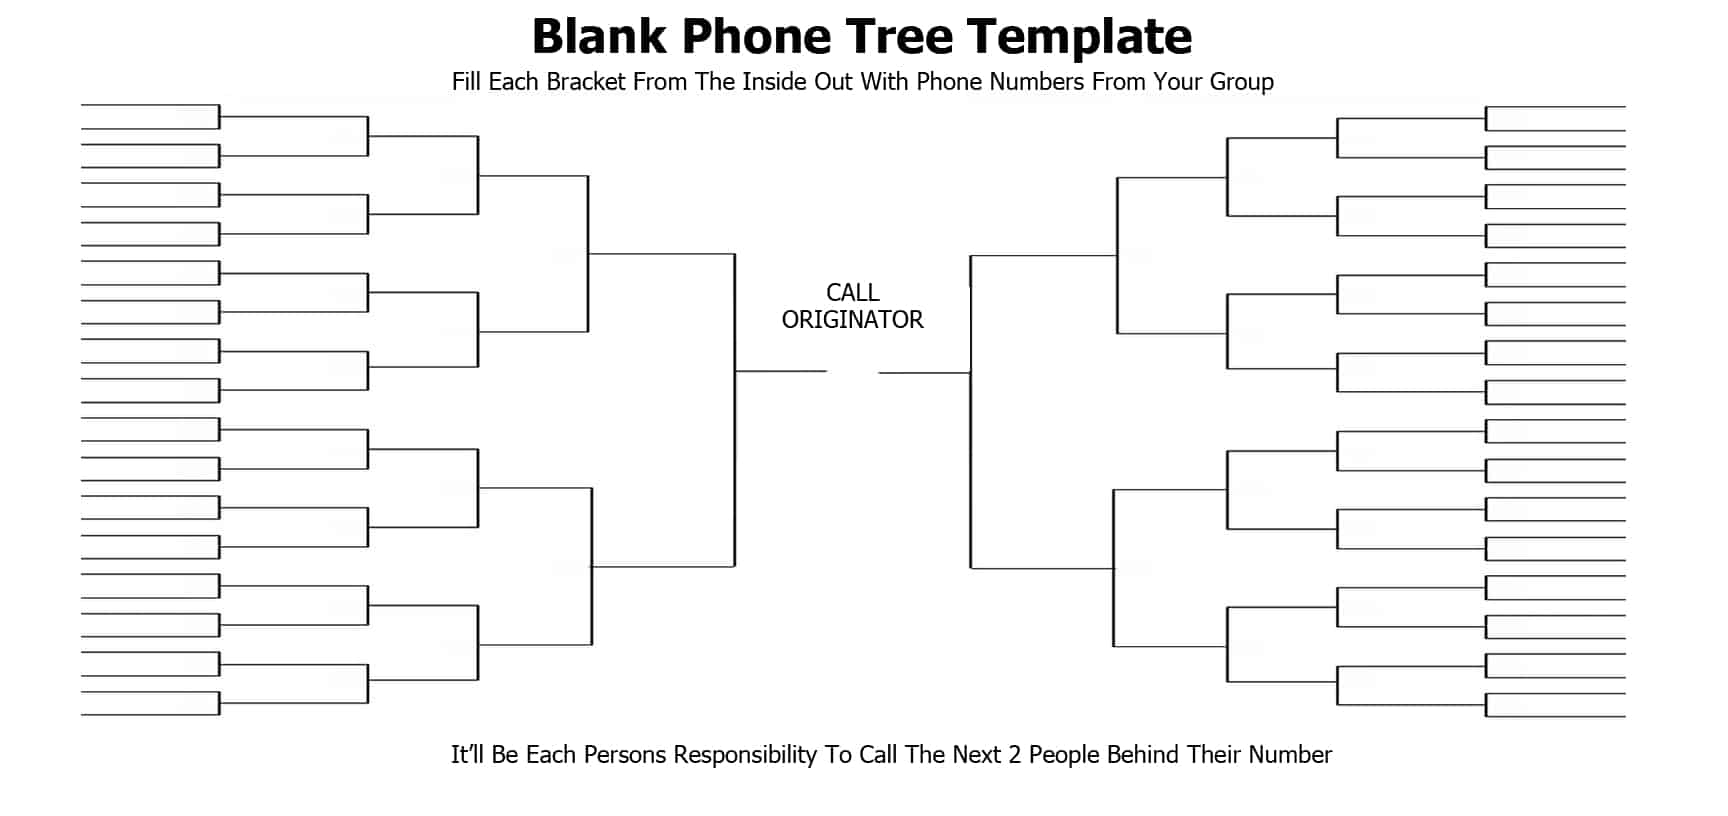 5 free phone tree templates word excel pdf formats for Blank decision tree template